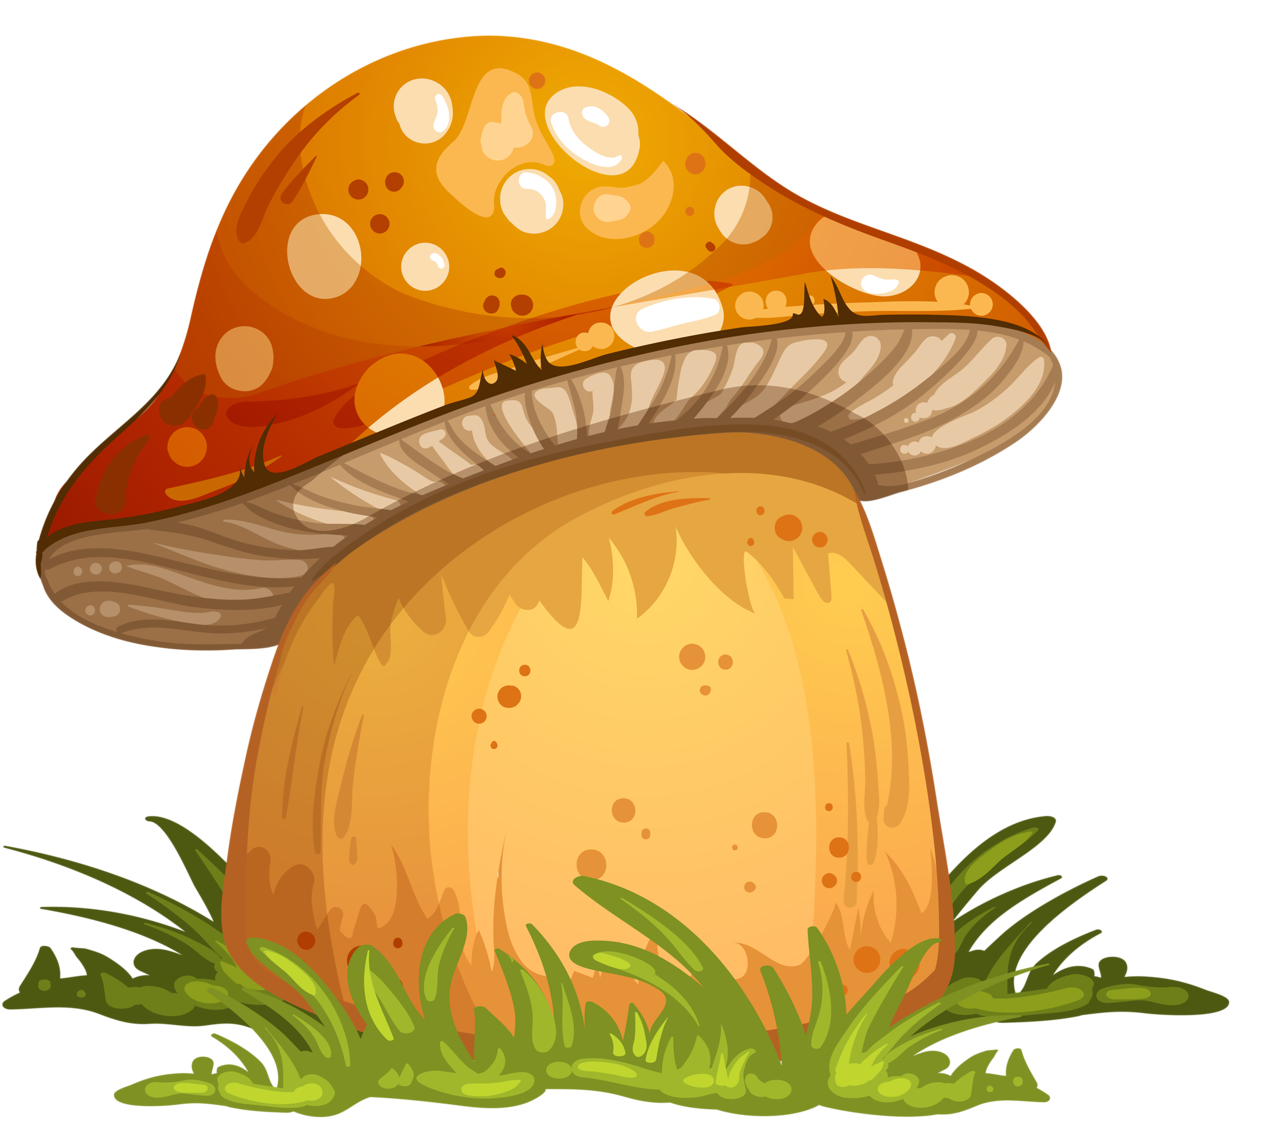 svg free stock Gnome clipart colorful mushroom. Free on dumielauxepices net